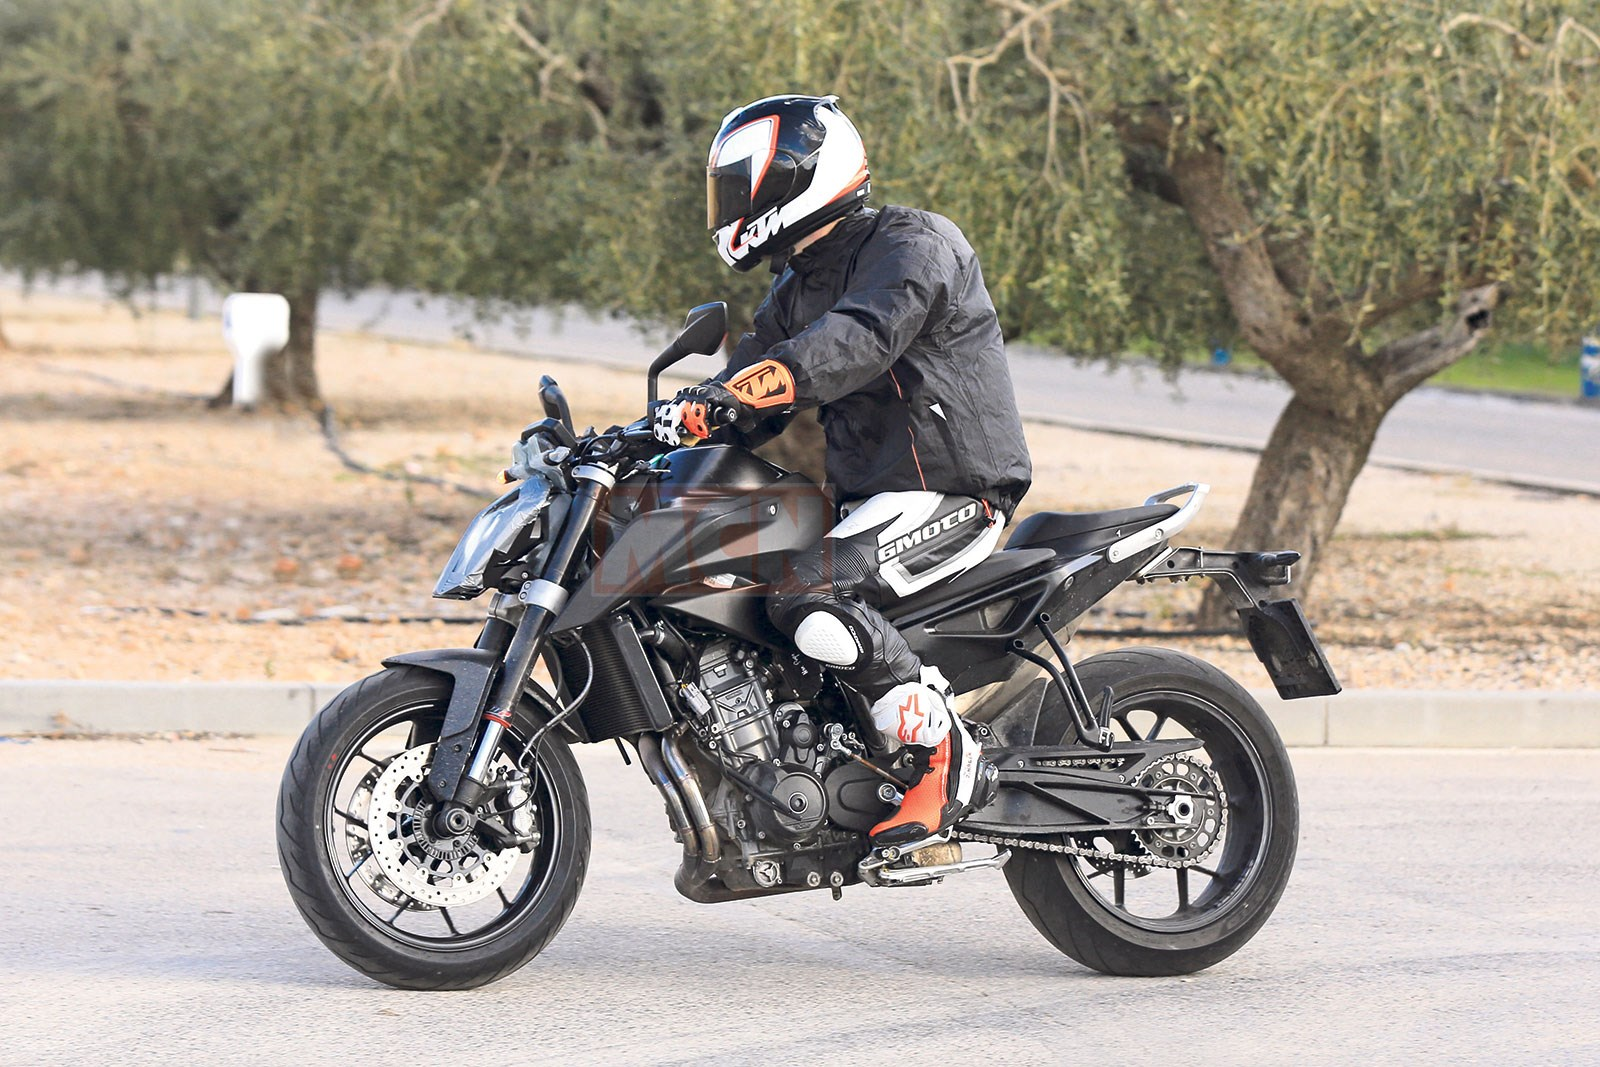 2017 KTM 790 Adventure unveiled at EICMA